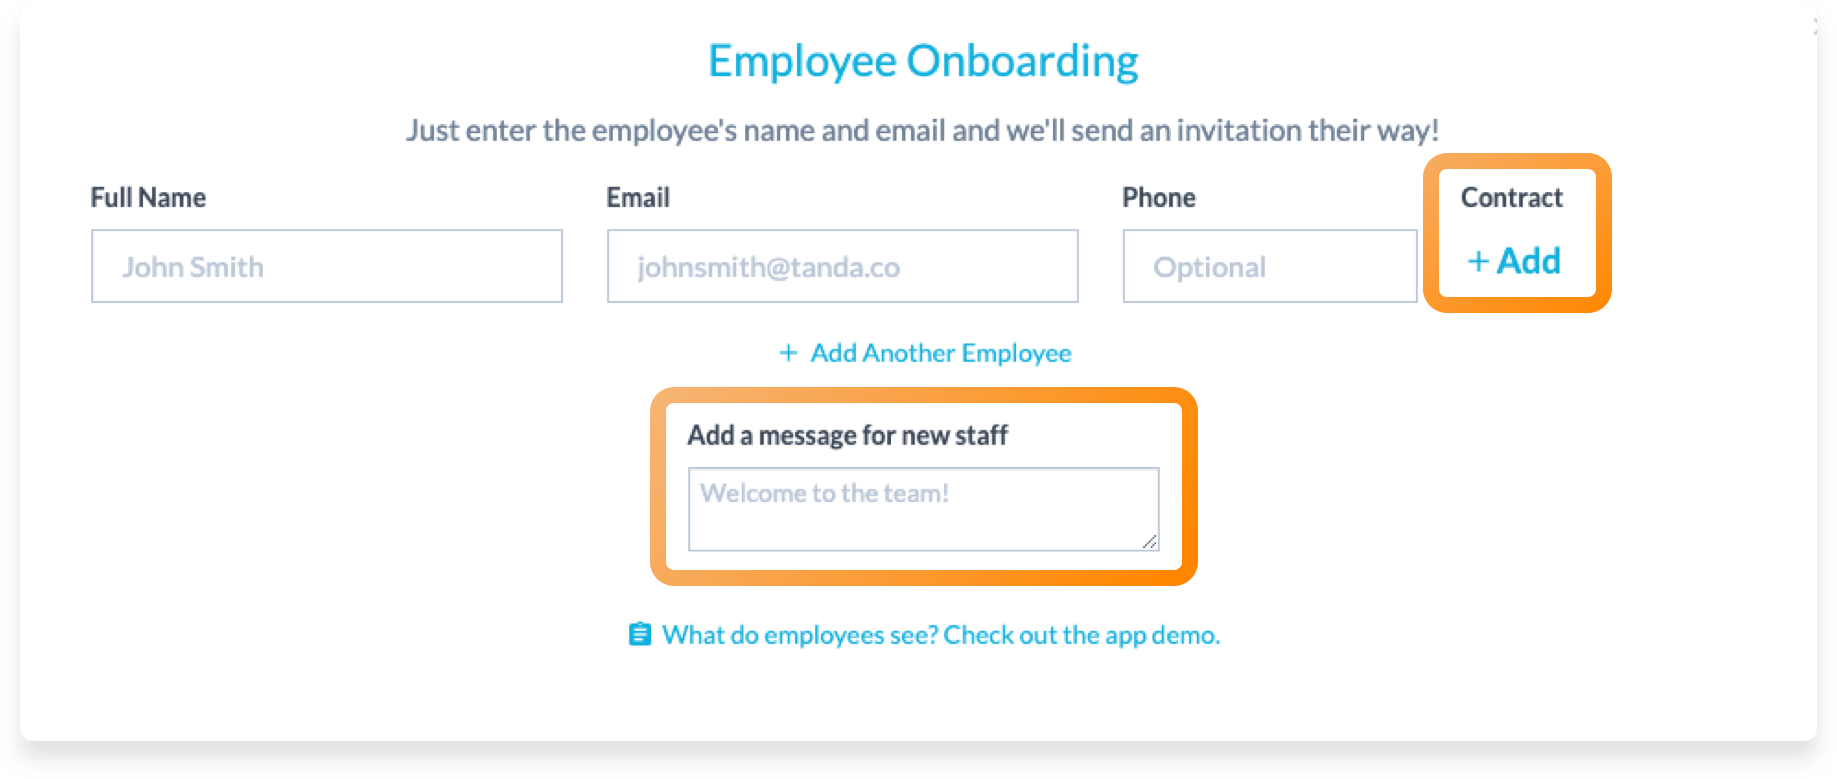 Add contract to onboarding invitation